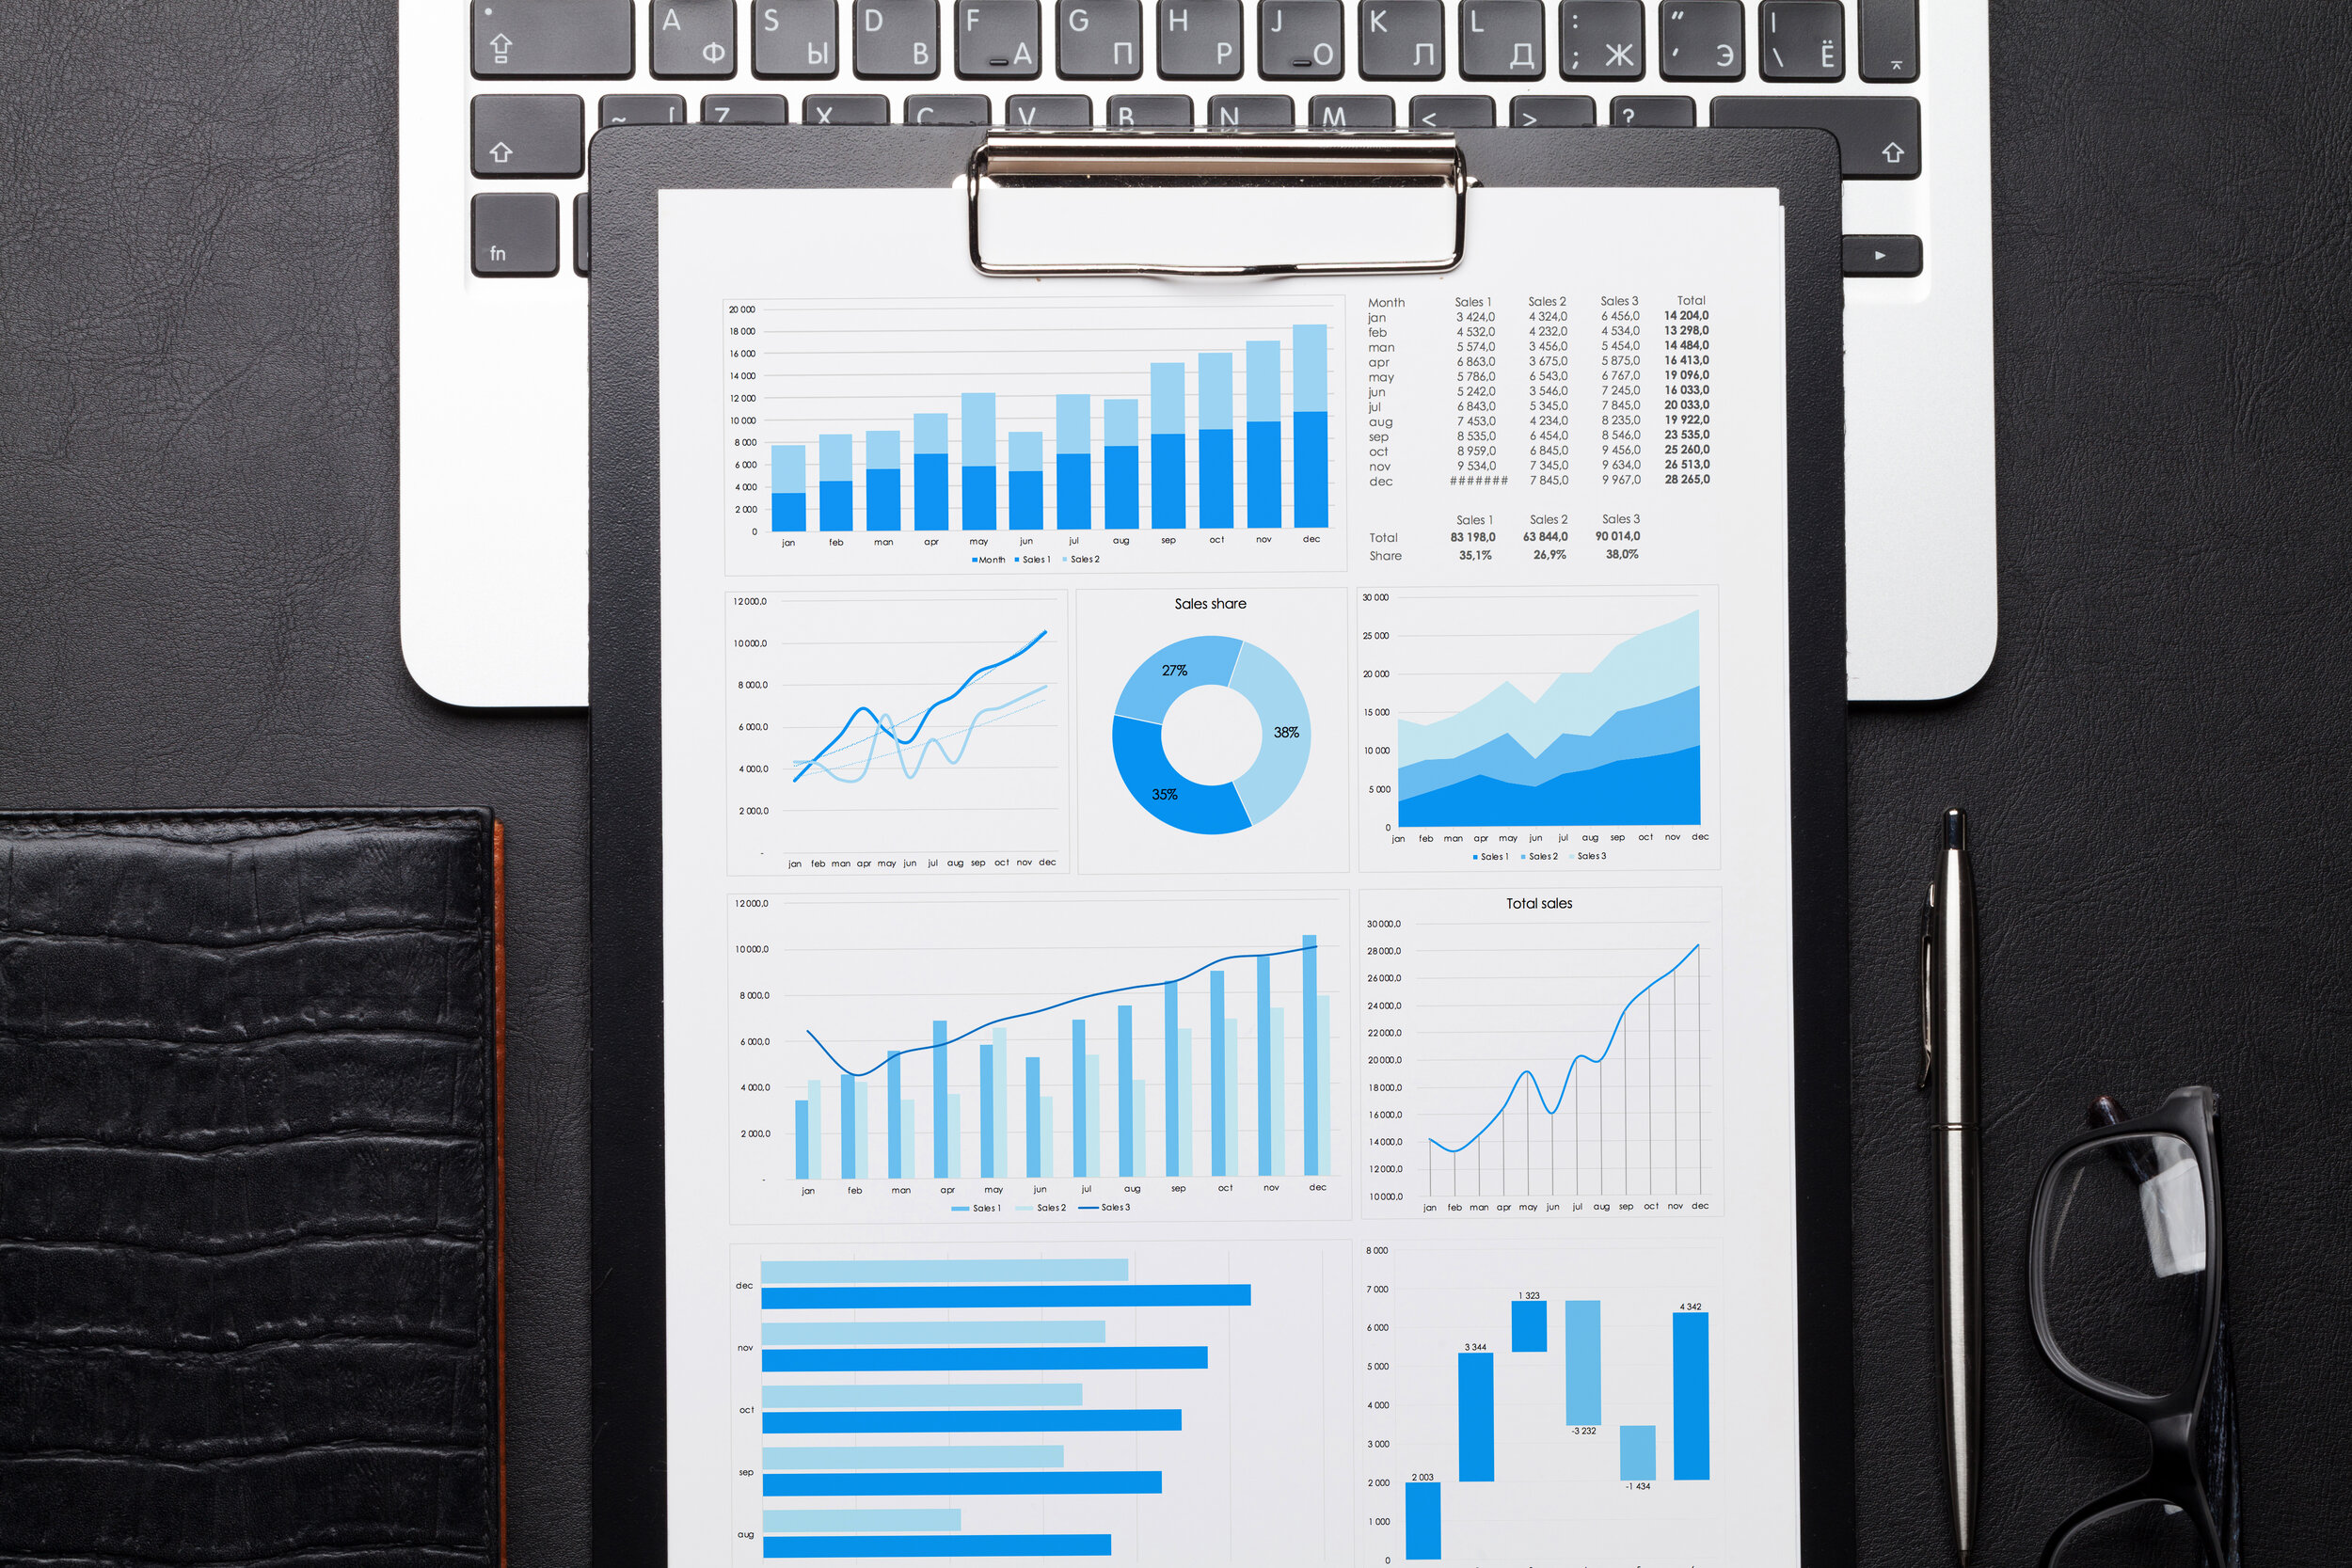 office-workplace-table-with-charts-86CUWDT.jpg